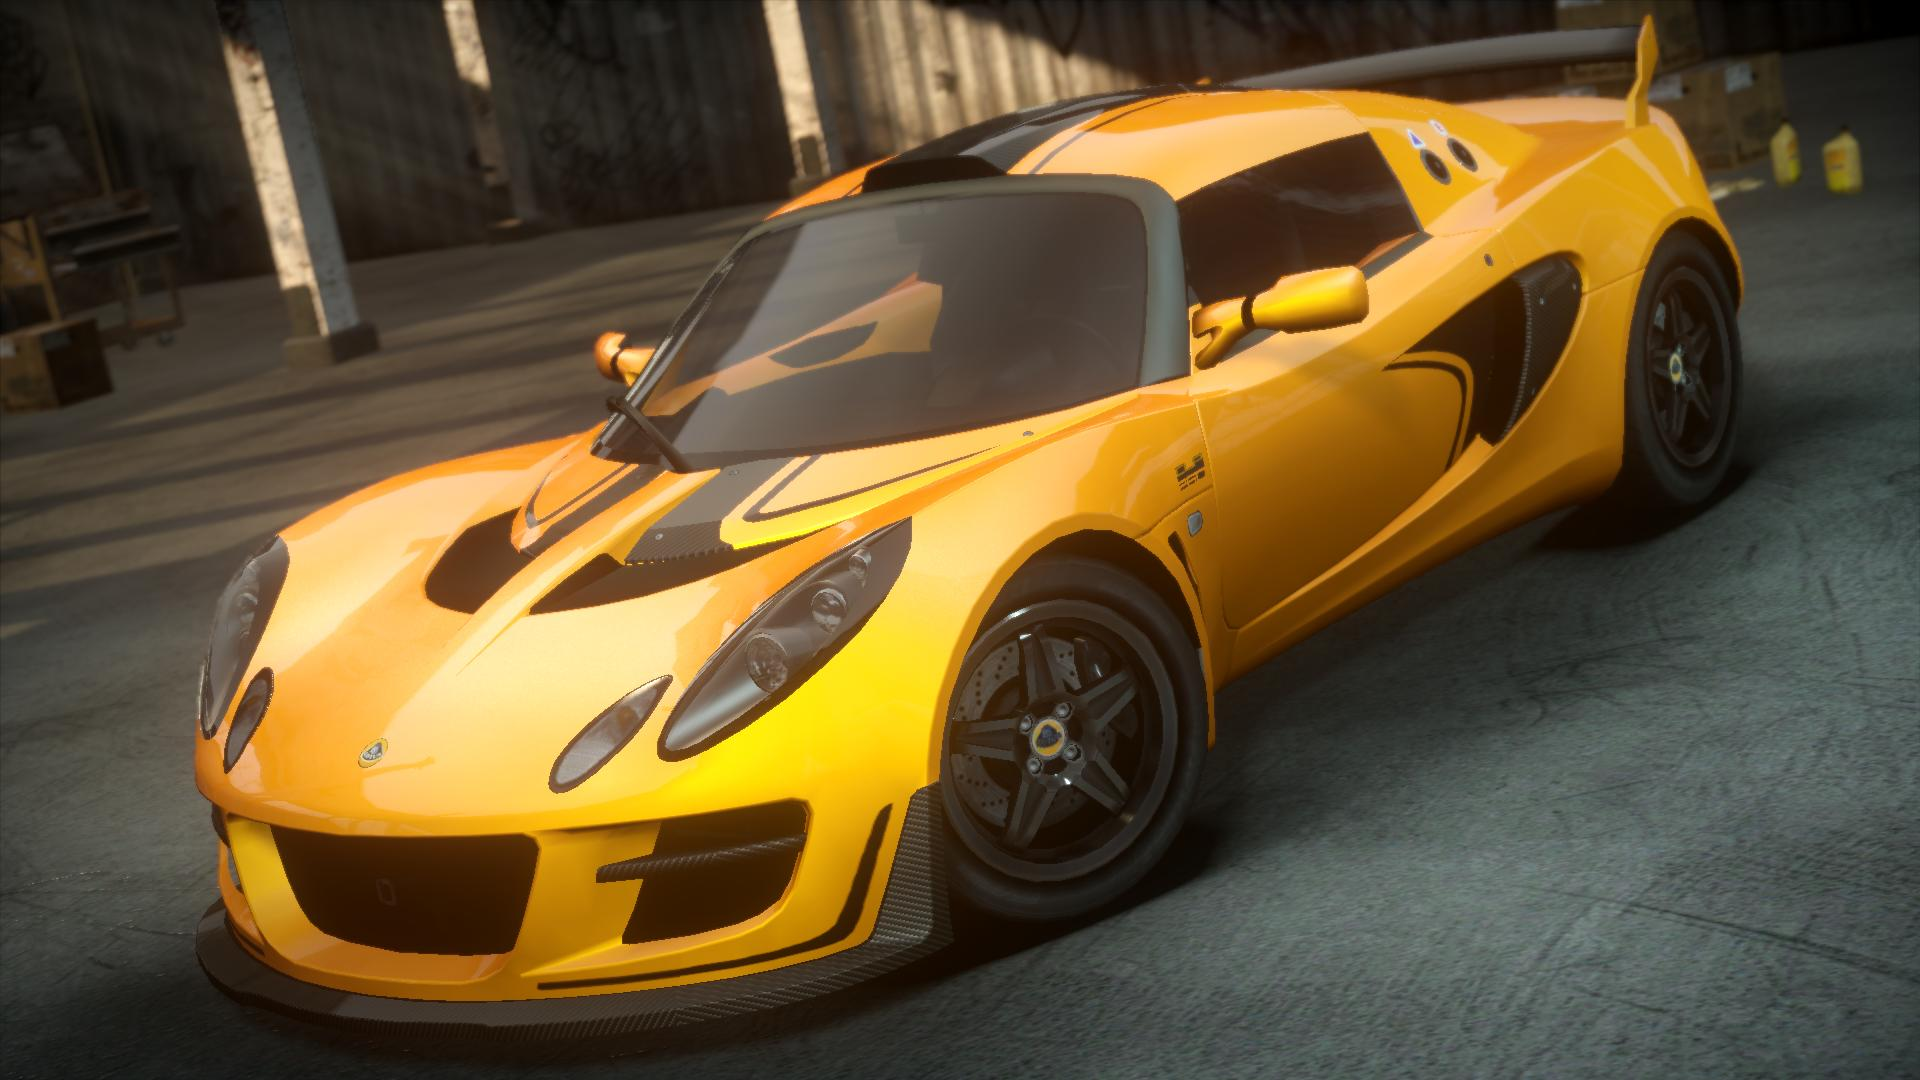 Lotus exige cup 260 need for speed wiki fandom powered by wikia vanachro Images